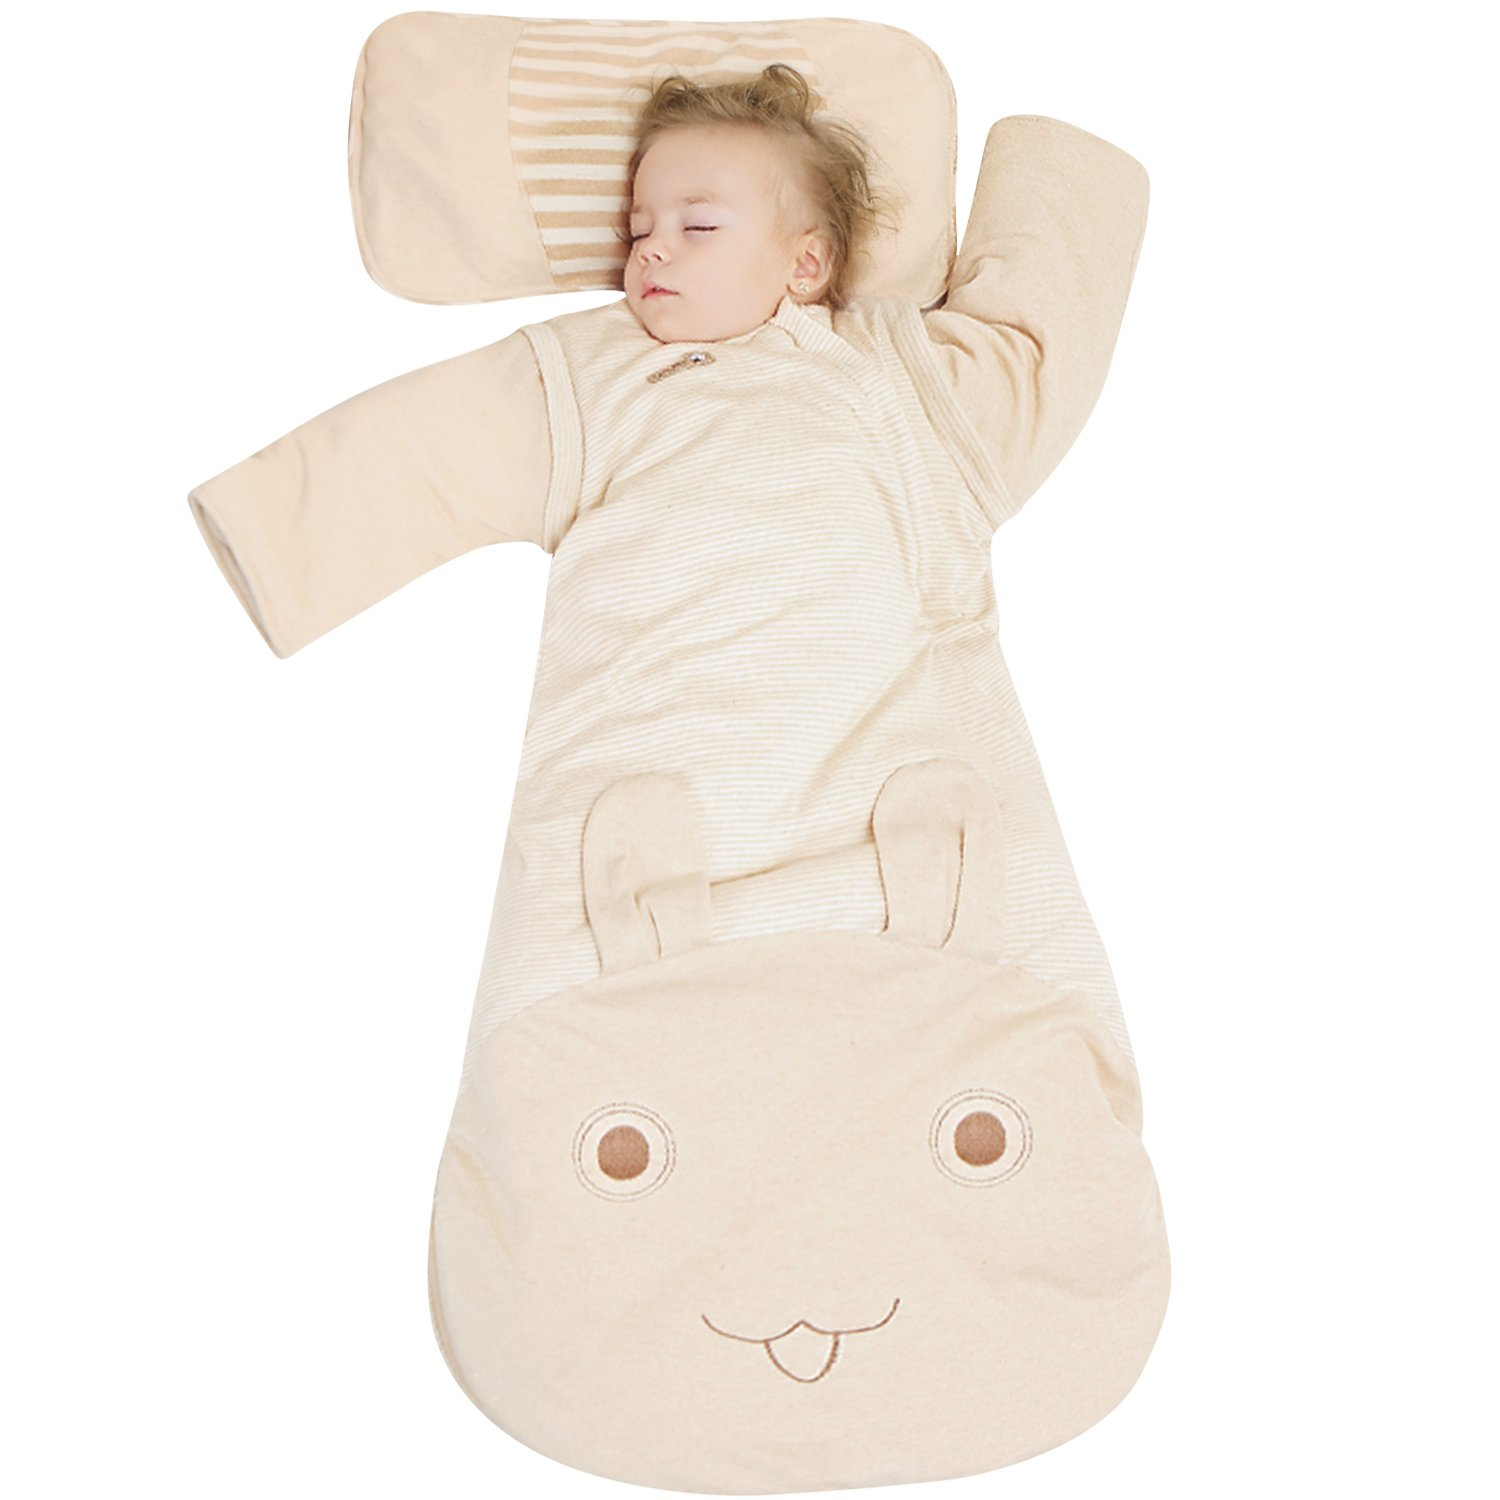 OuYun Baby Organic Sleeping Bag Autumn Detachable Sleeve Wearable Blanket, Moderate Thick, Large